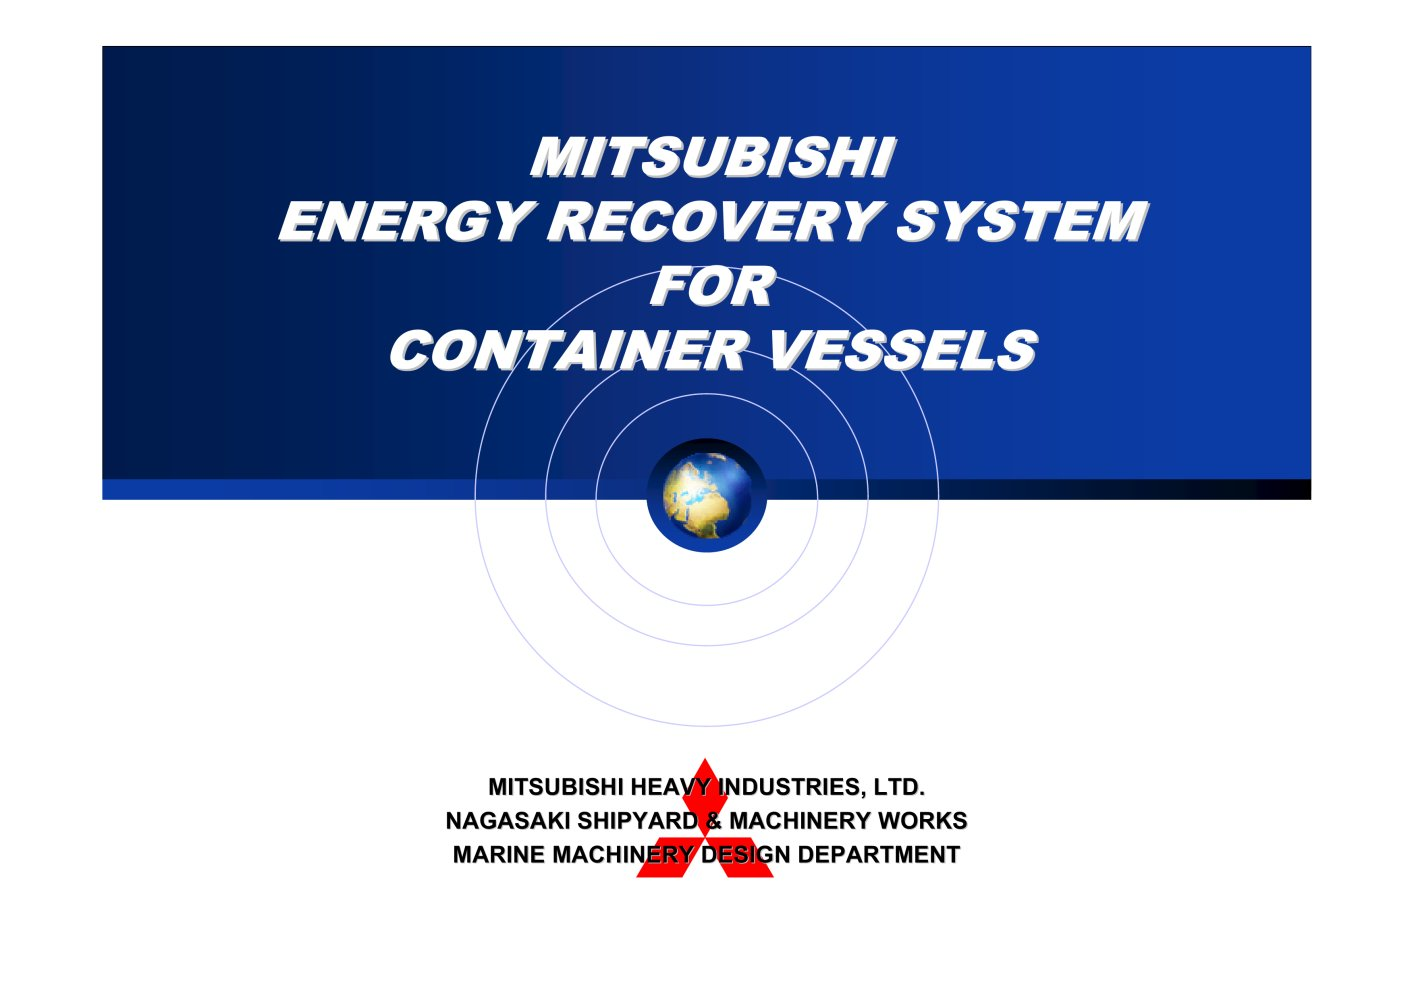 Energy recovery system for container vessels mitsubishi heavy energy recovery system for container vessels 1 22 pages sciox Gallery